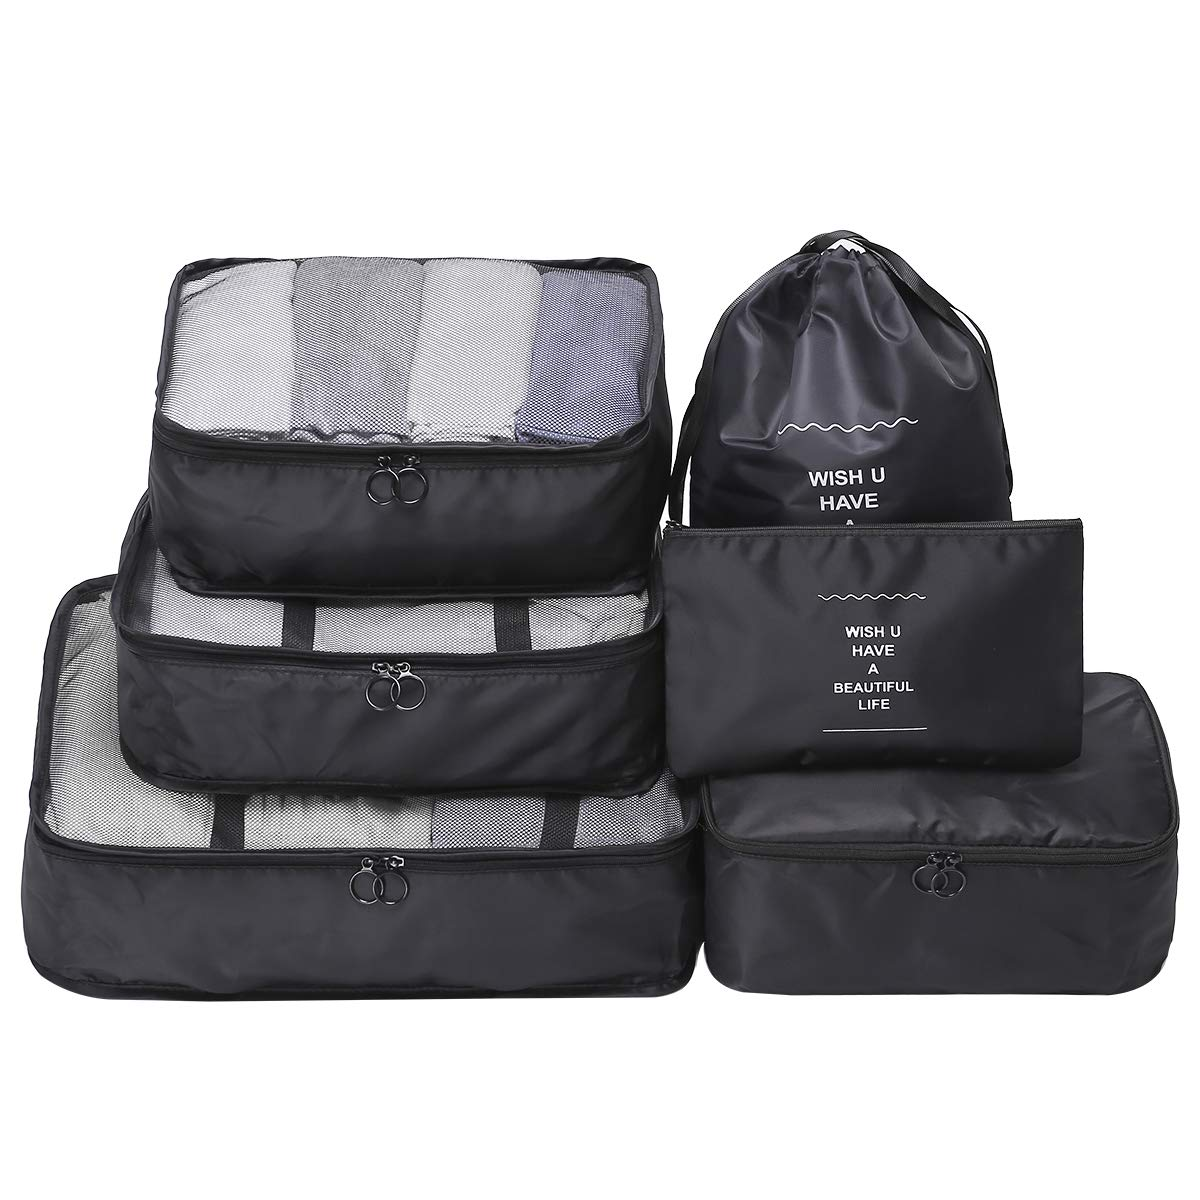 OEE 6 pcs Luggage Packing Organizers Packing Cubes Set for Travel by OEE